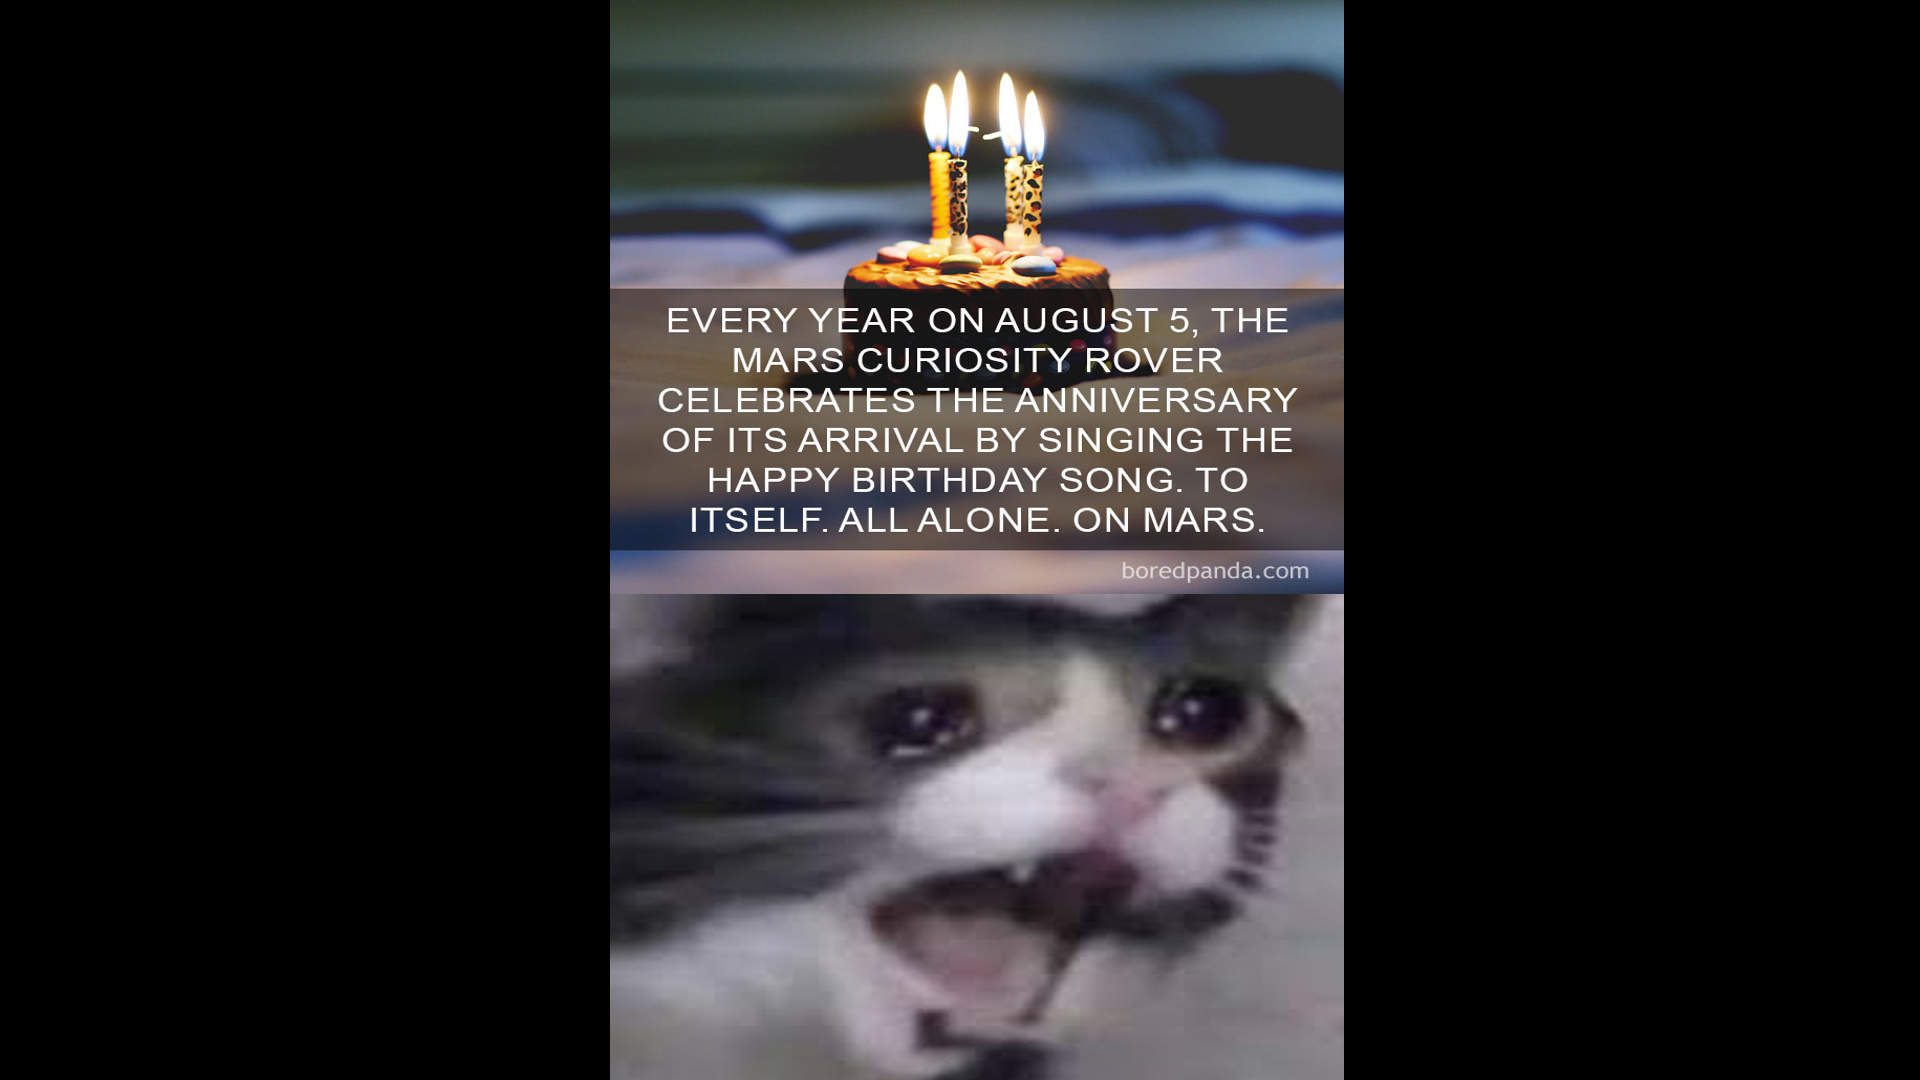 sad cat - meme